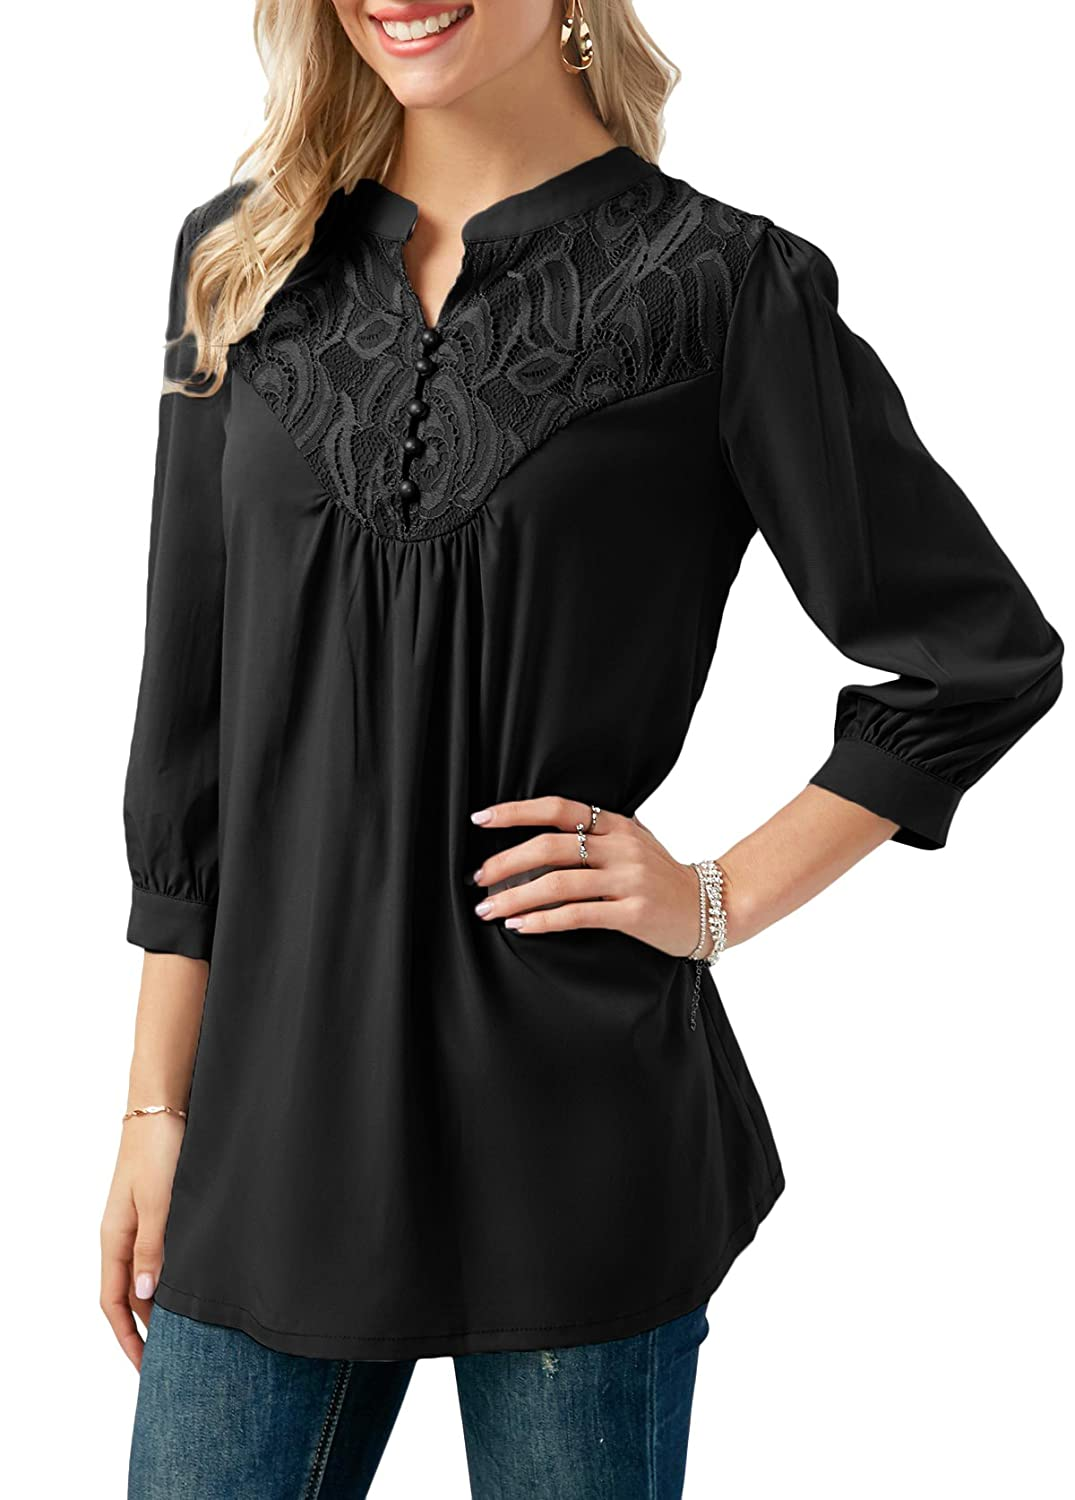 49c2bdc9df97 High quality fabric: Chiffon and lace with exquisite workmanship.  Lightweight, soft and comfortable skin touch. Stylish Design: Notch neck,  3/4 sleeve, ...